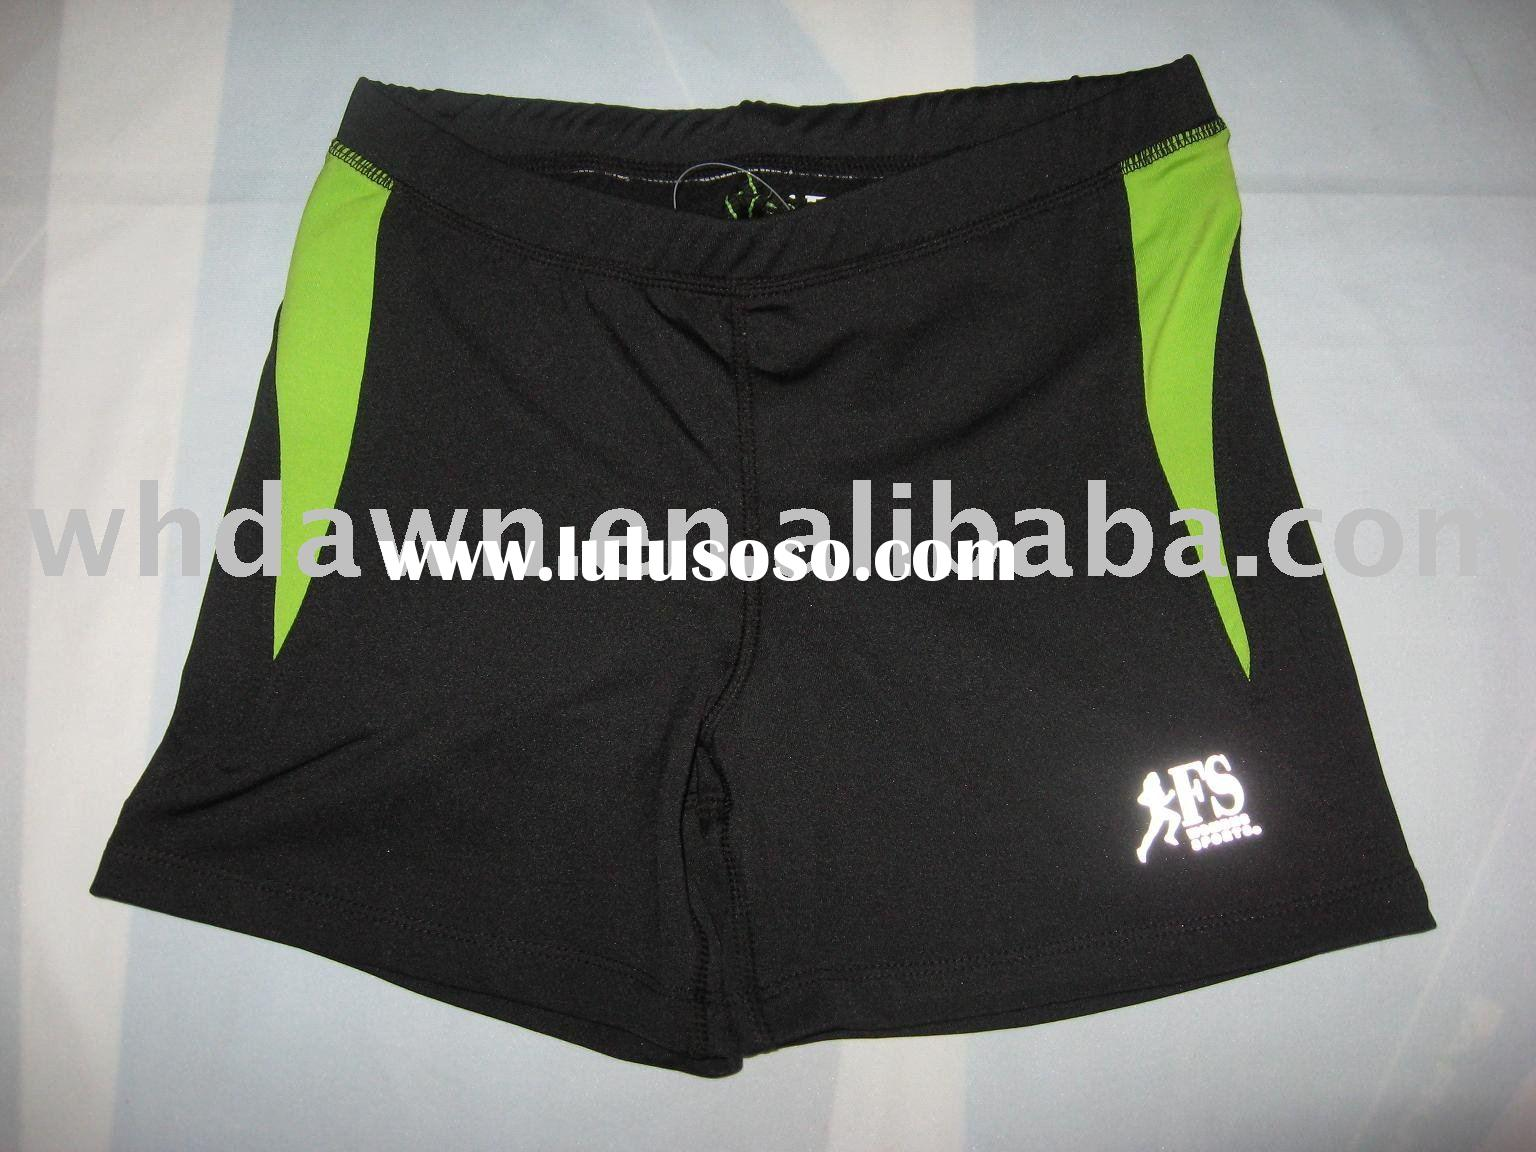 adidas running shorts with compression liner